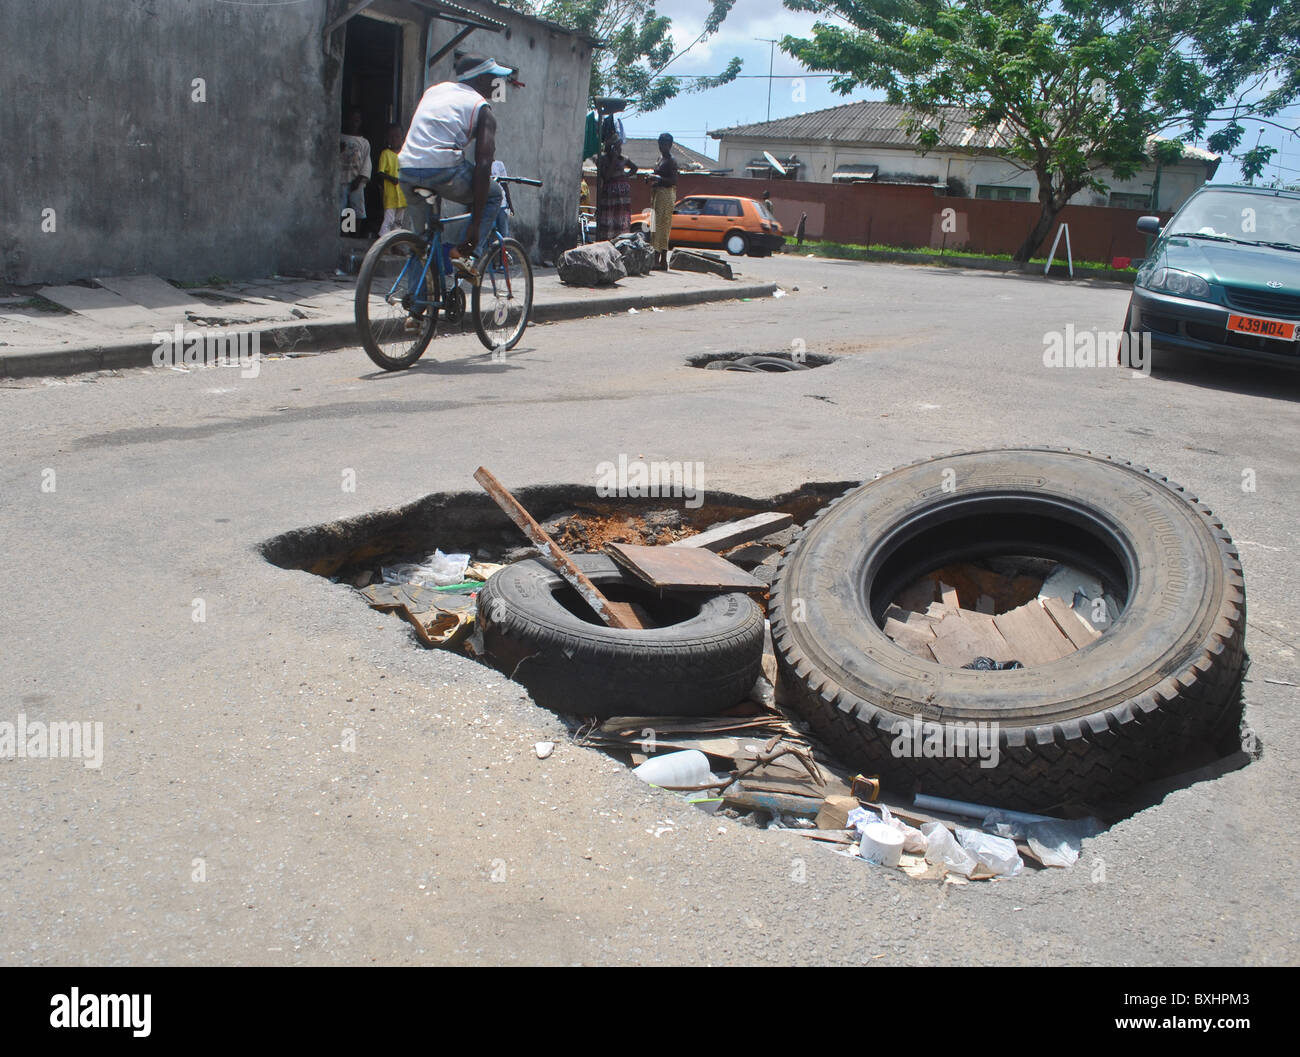 Giant potholes in a road in Abidjan, Ivory Coast - Stock Image